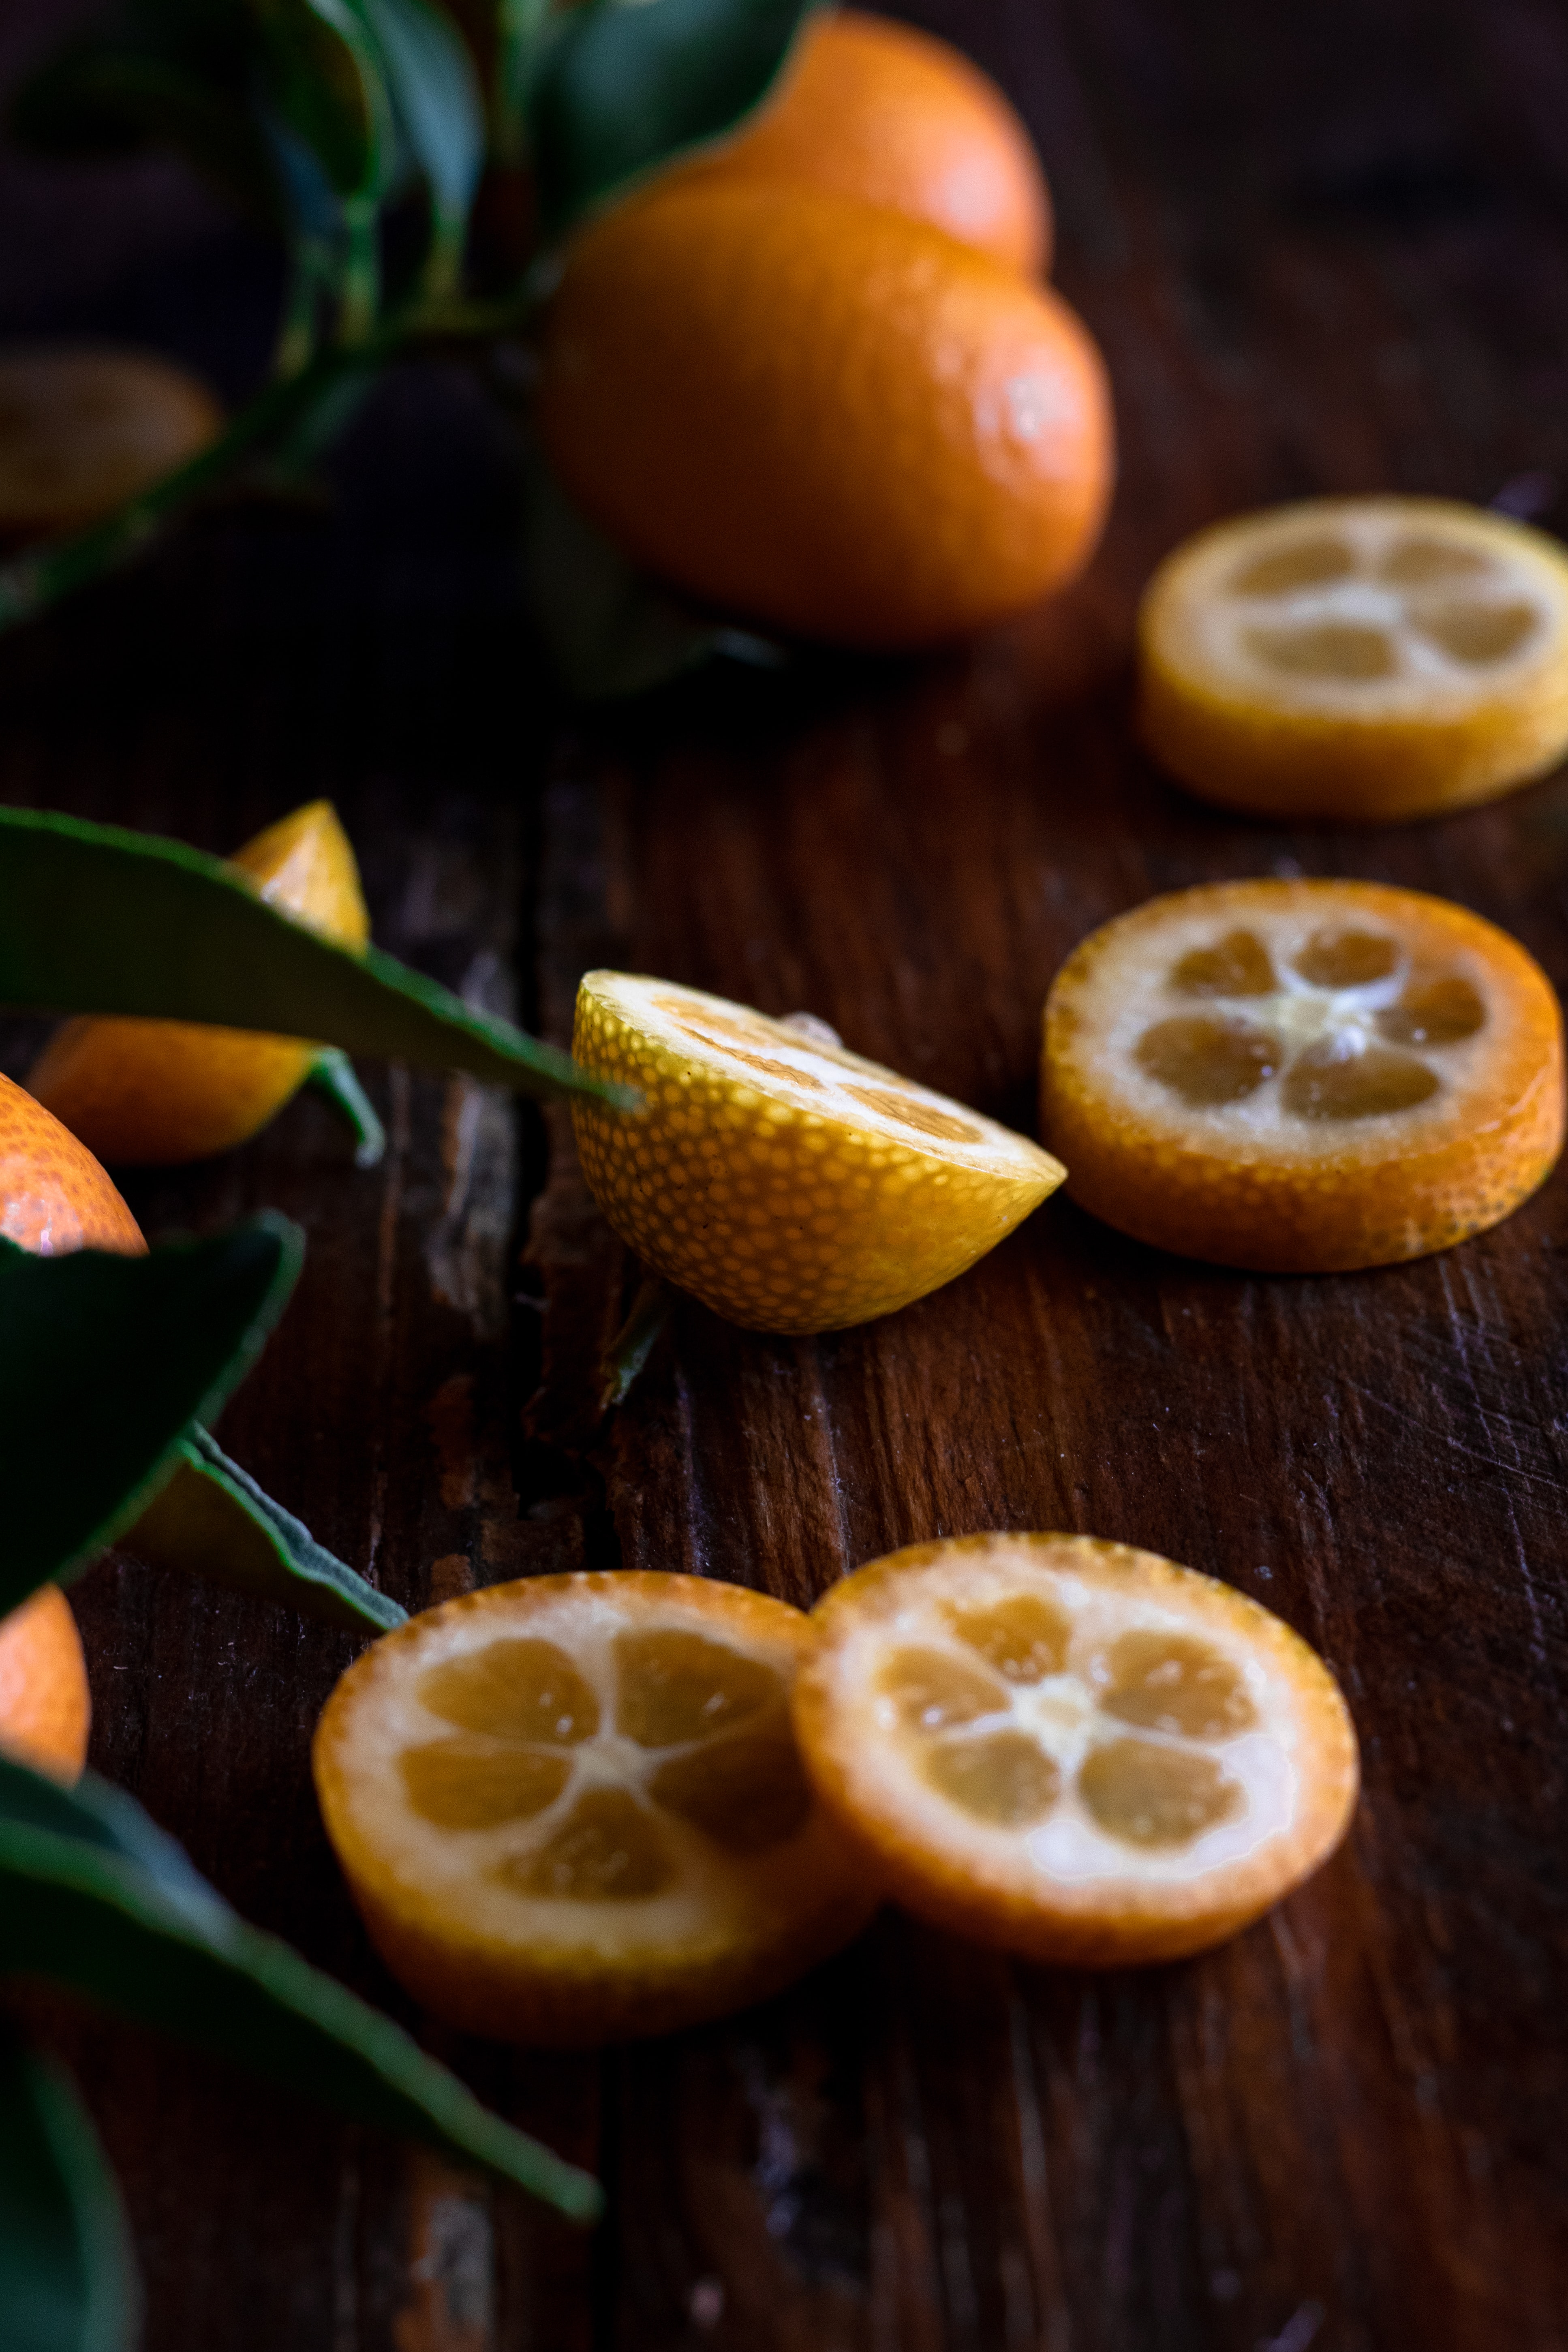 selective focus photography of sliced orange fruits